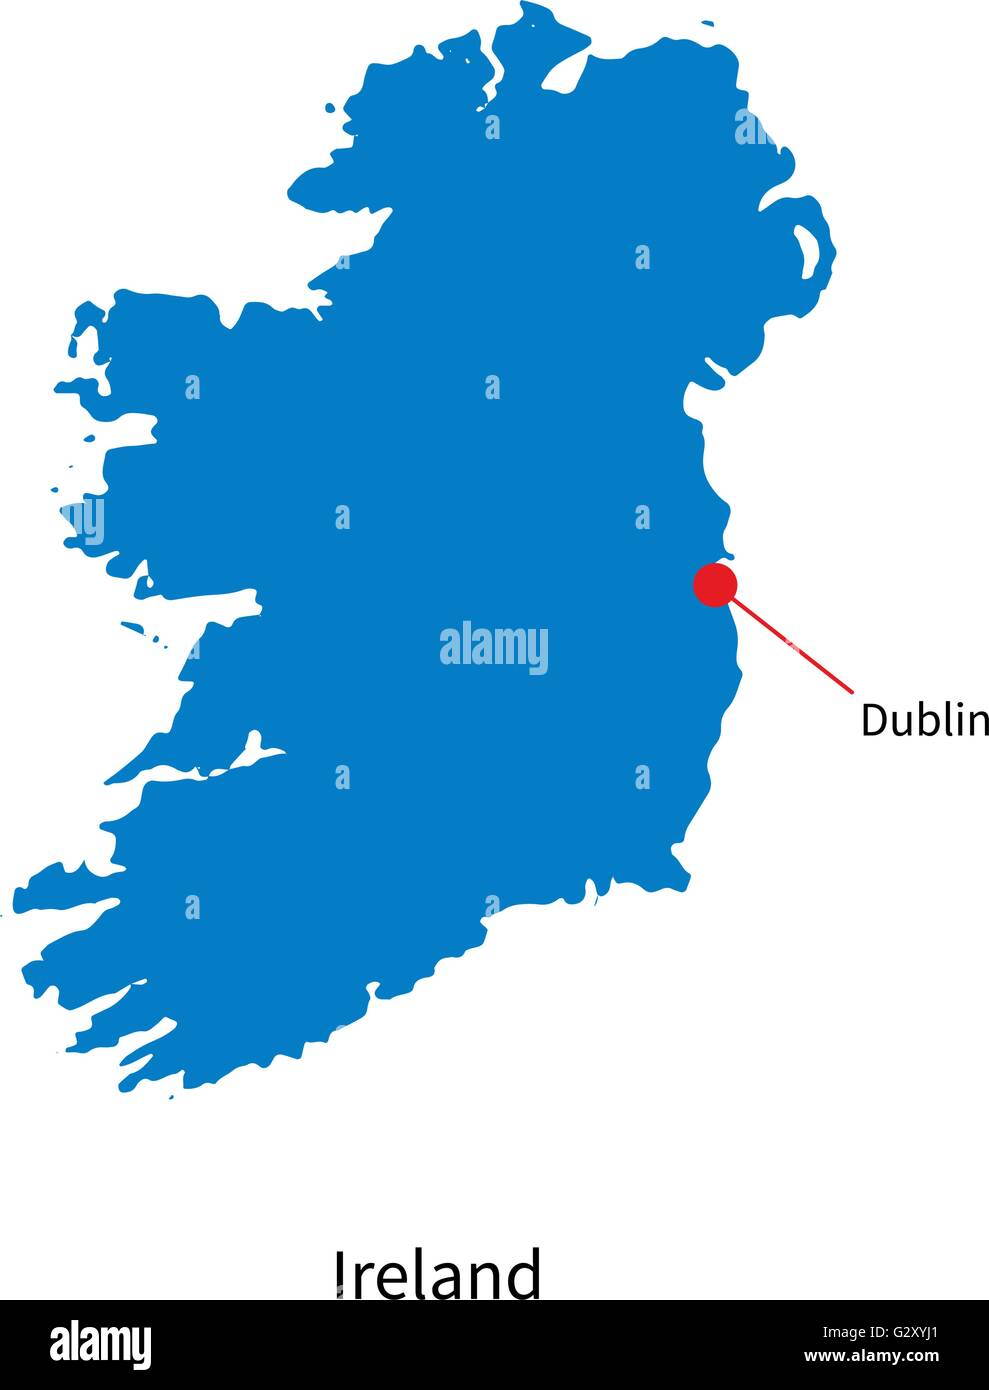 Detailed Map Of Ireland Vector.Detailed Vector Map Of Ireland And Capital City Dublin Stock Vector